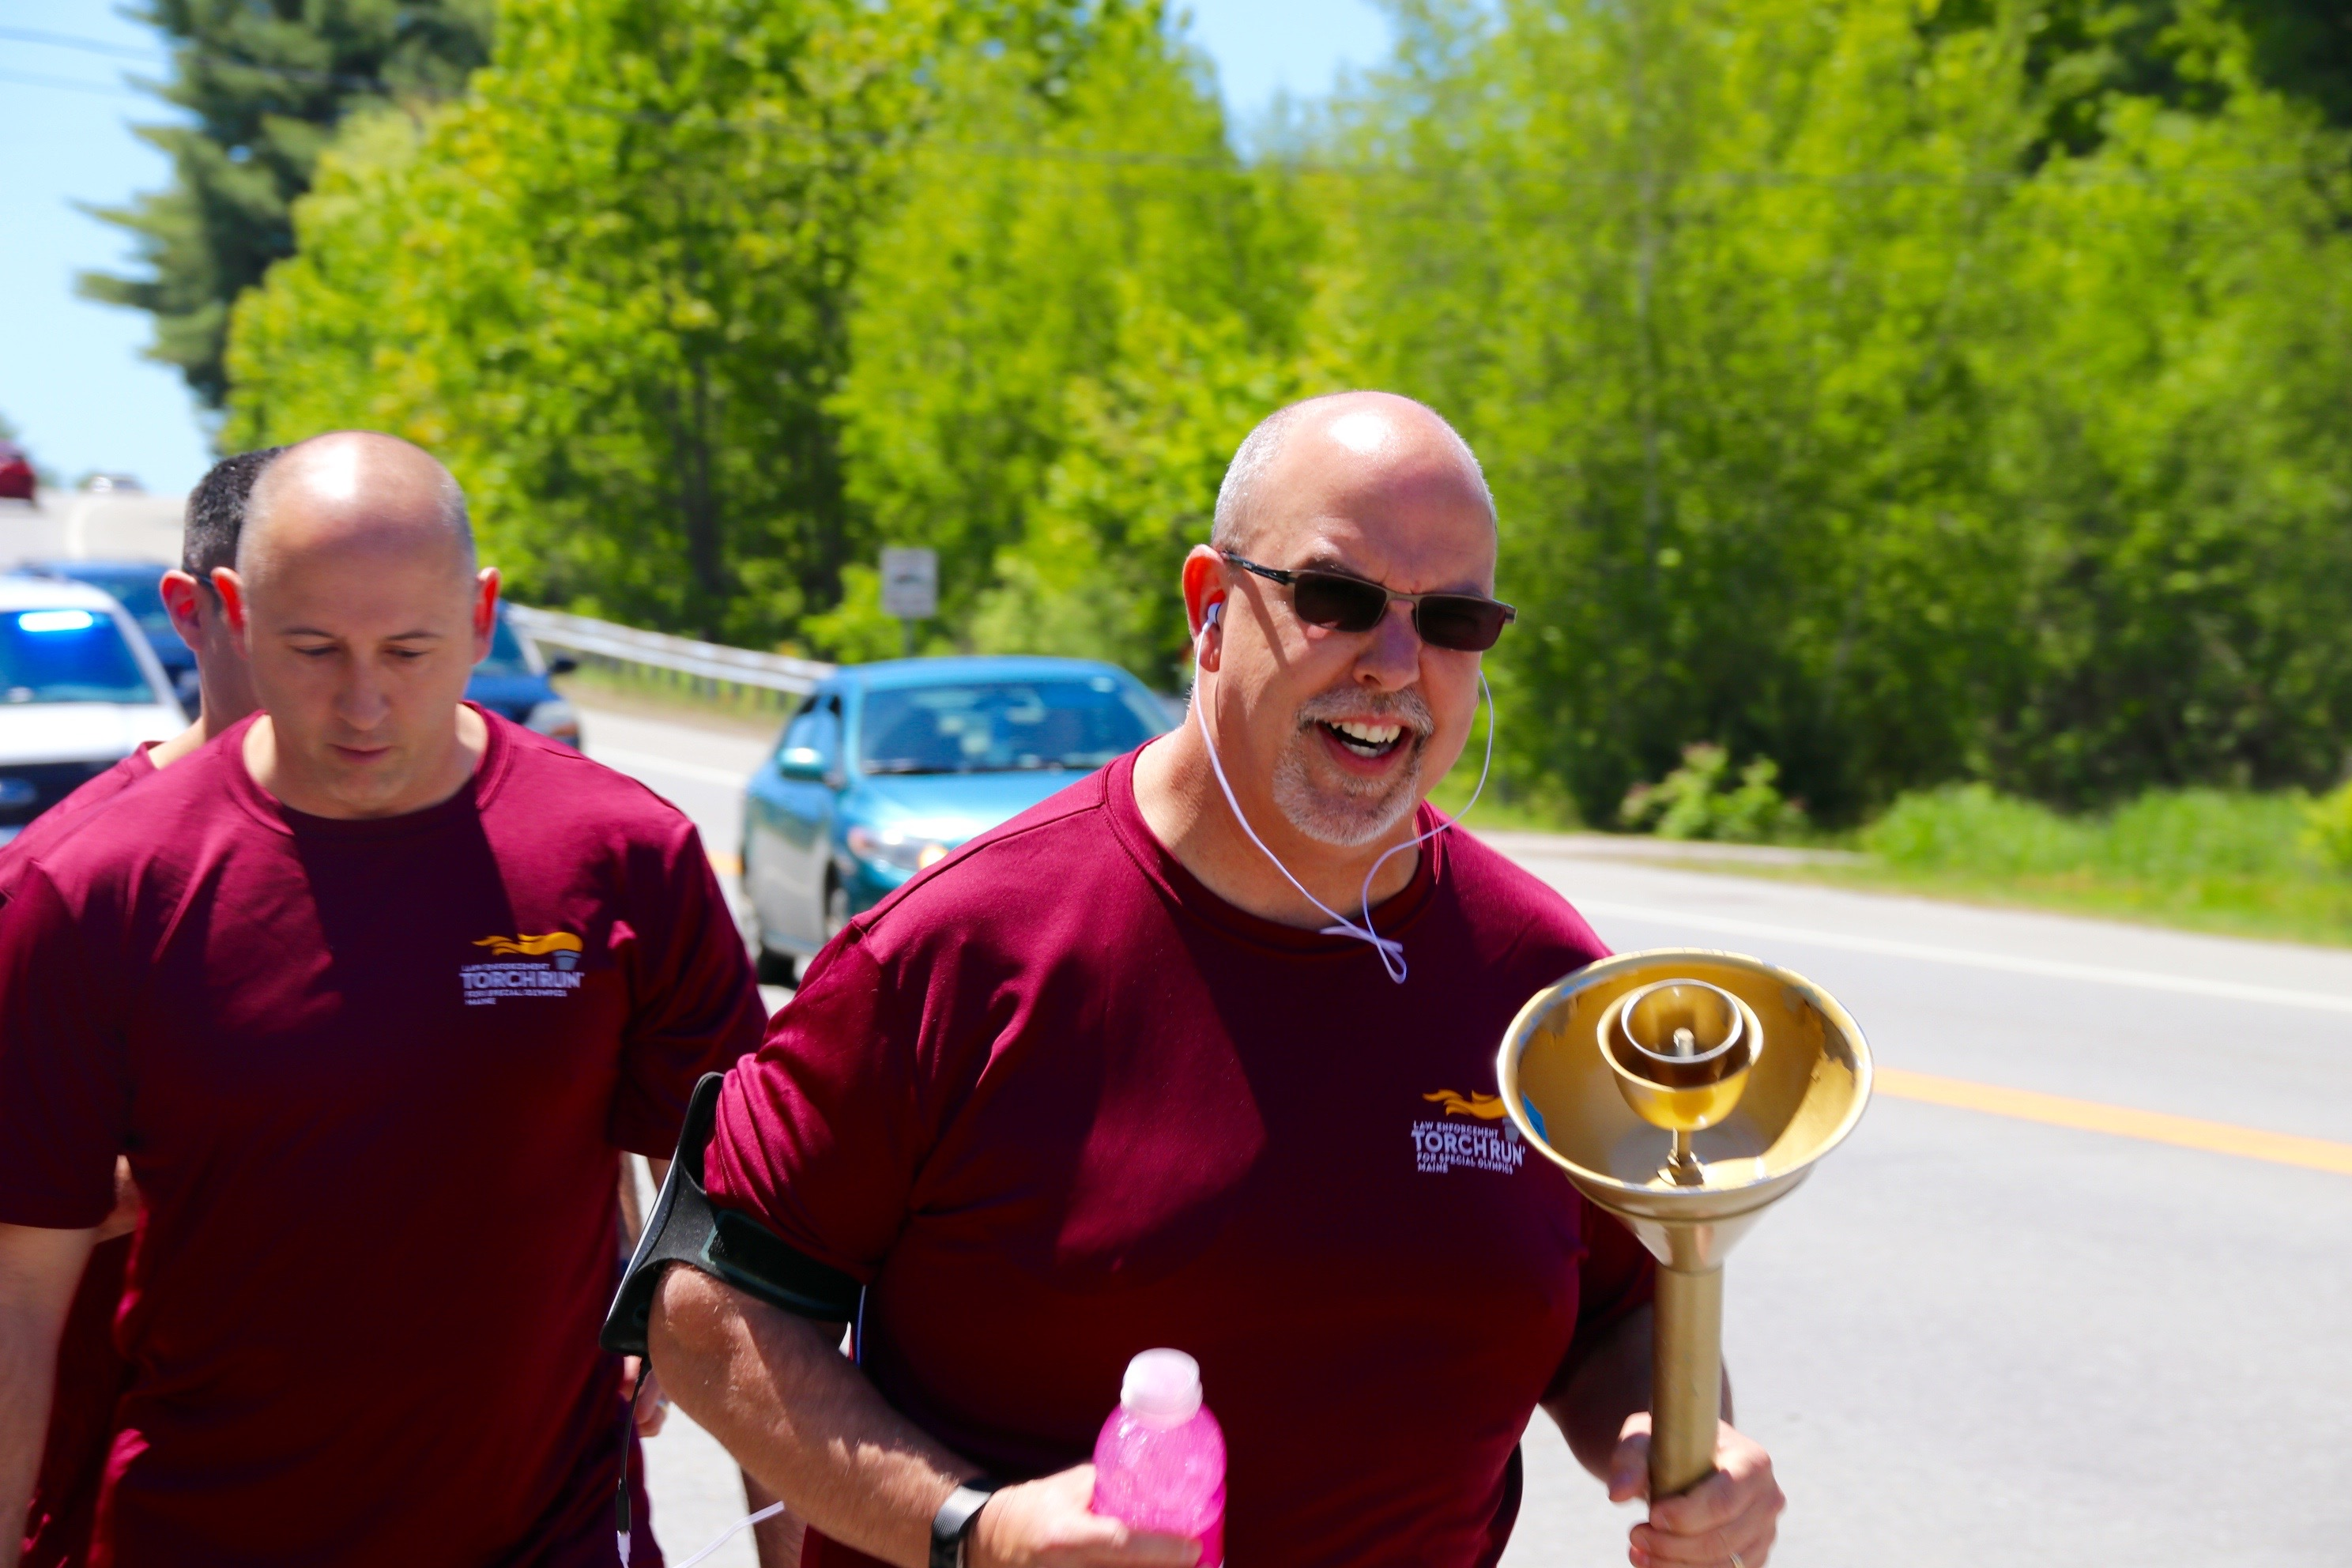 Biddeford Police Department dispatcher R.J. Legere carries the torch for Biddeford in the Special Olympics Torch run on Wednesday.TAMMY WELLS/Journal Tribune